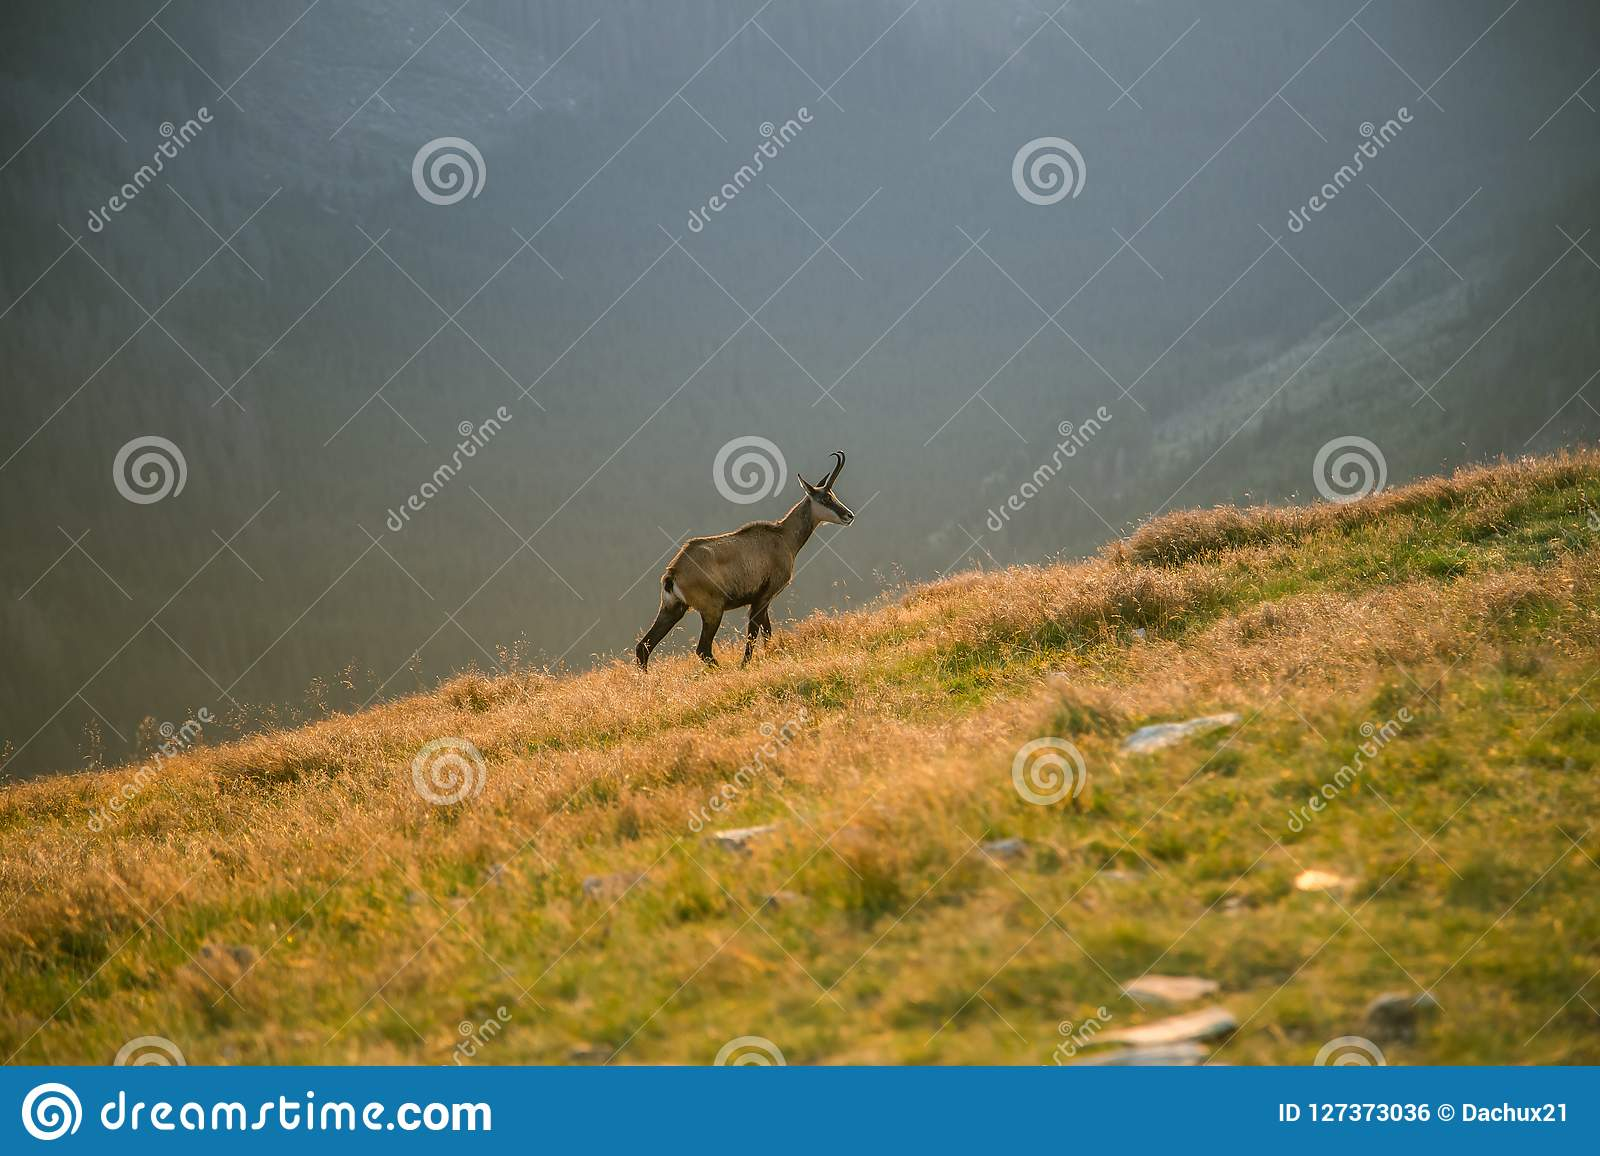 A beautiful, curious wild chamois grazing on the slopes of Tatra mountains. Wild animal in mountain landscape.